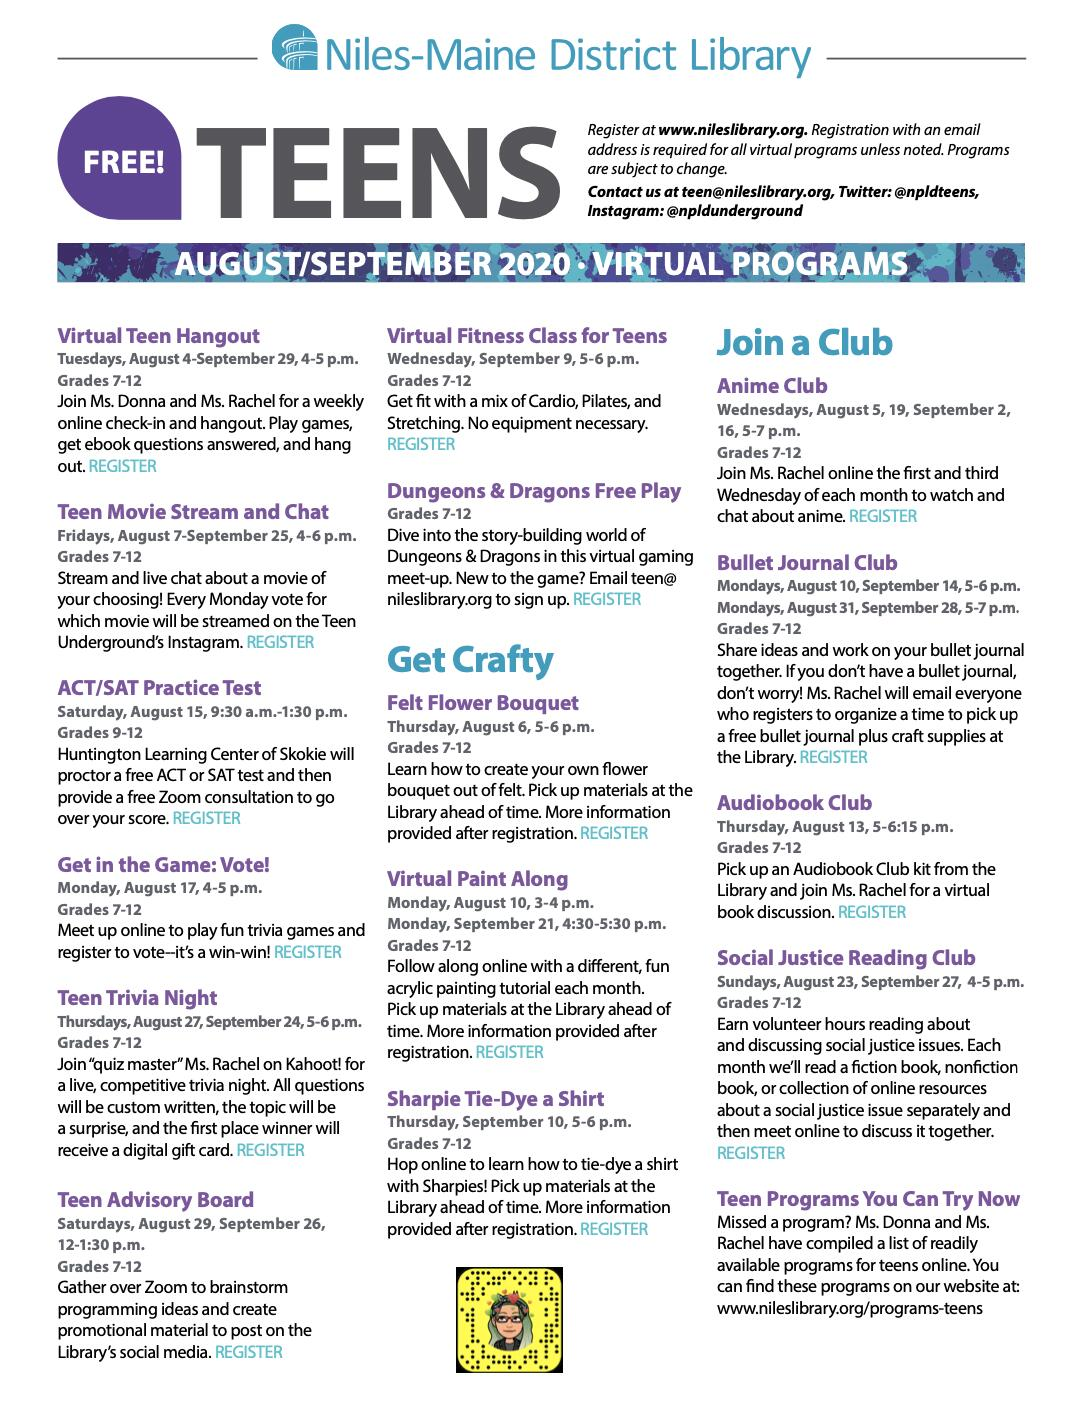 Niles-Maine District Library Teen Virtual Programs